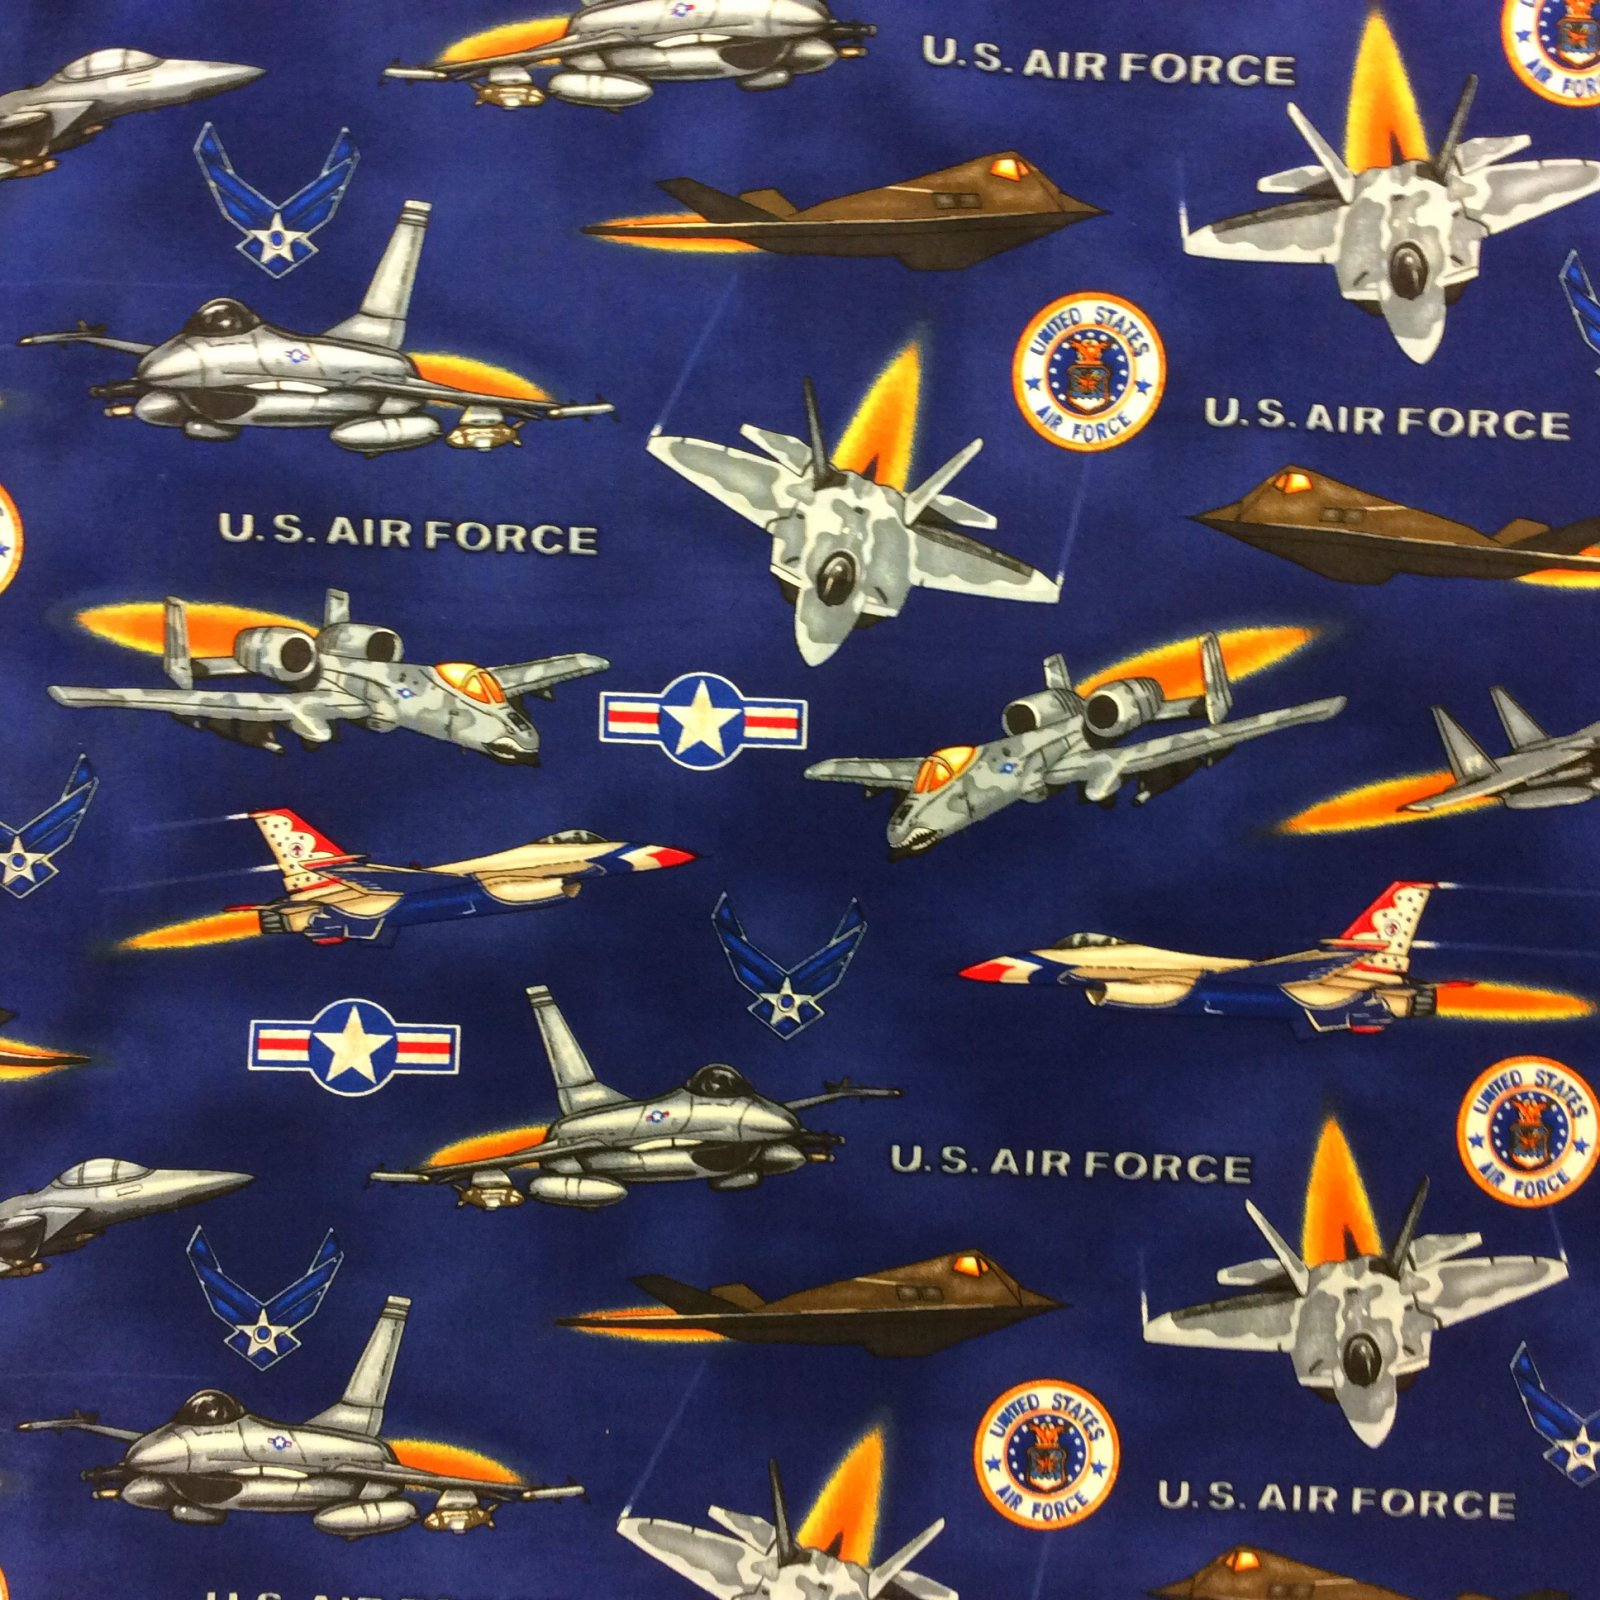 Air Force Airplane FIghter Jet Army United States USA Cotton Quilt Fabric MD305